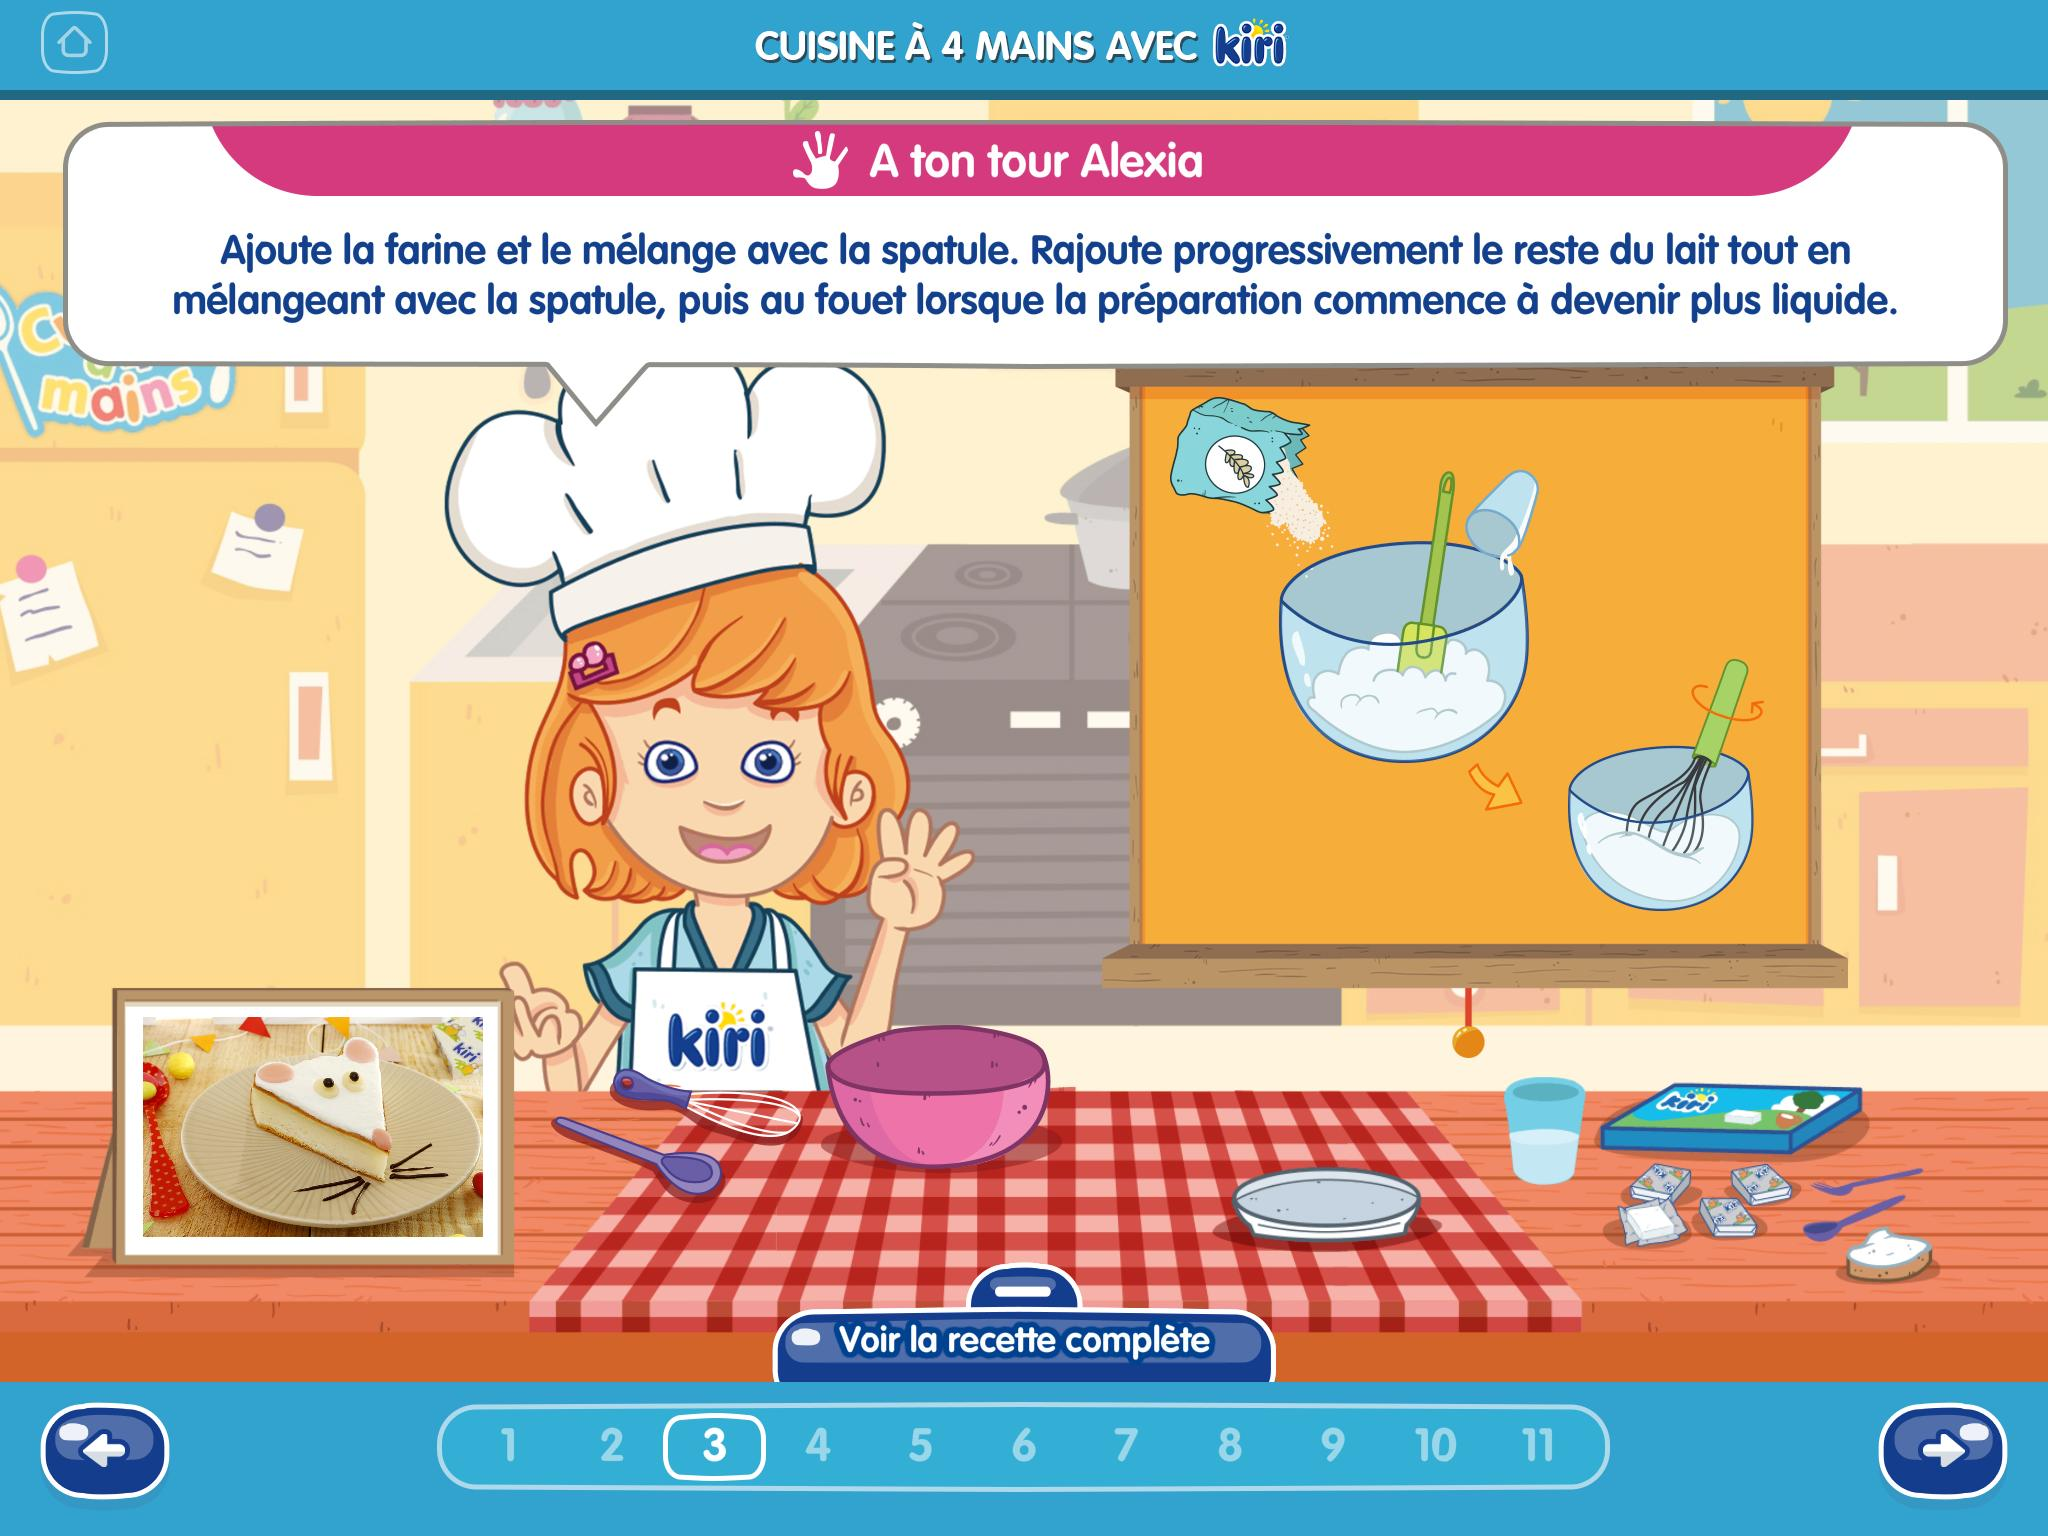 Kiri Cuisine A 4 Mains For Android Apk Download